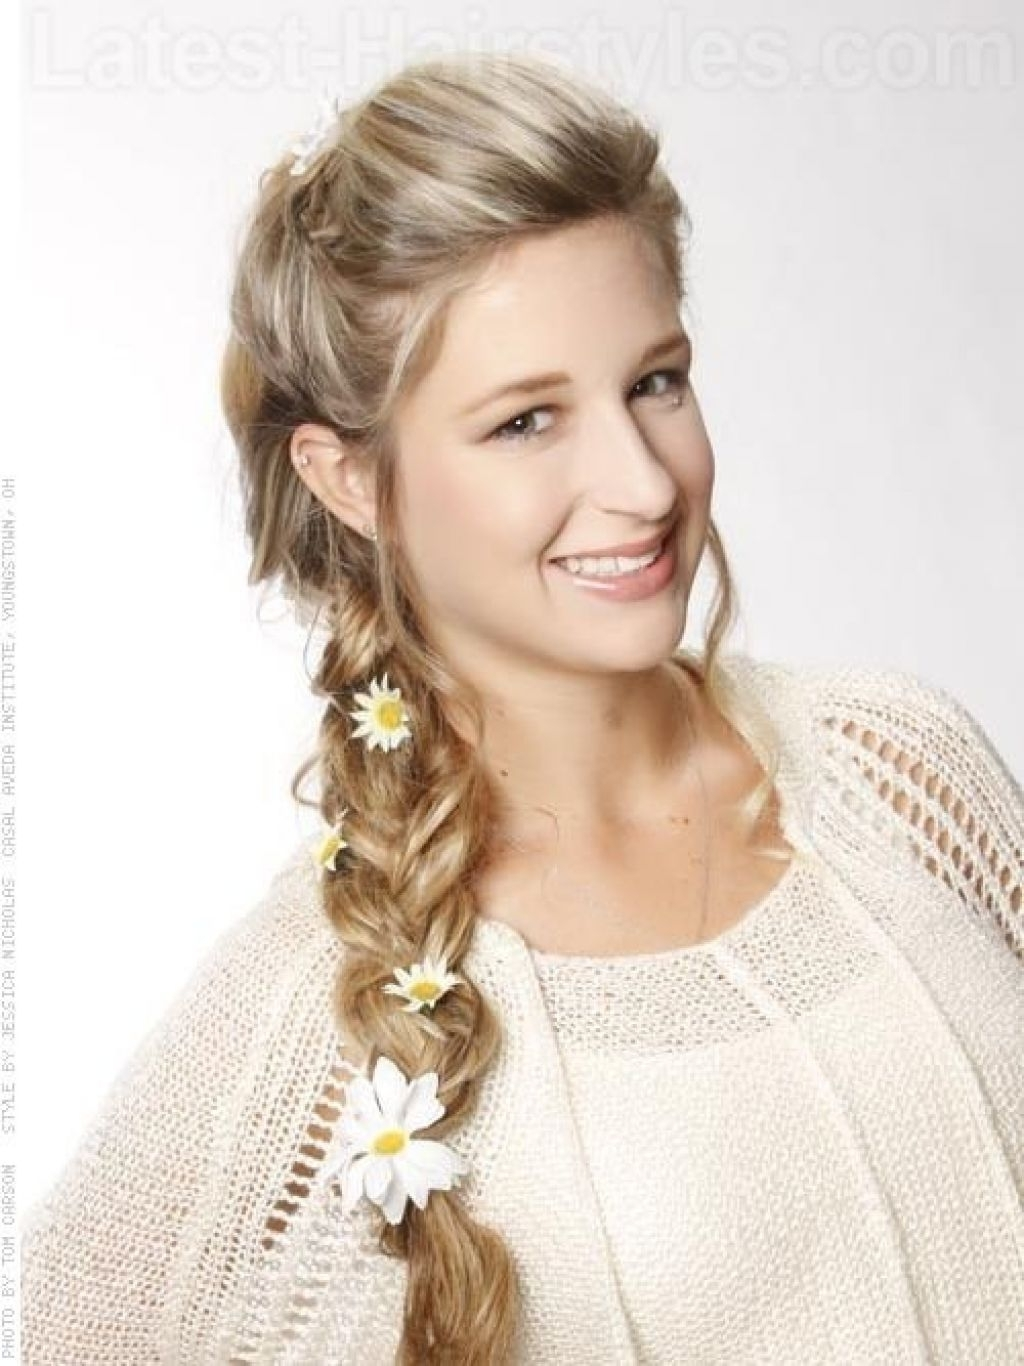 Vintage Quick And Easy Braided Hairstyles 37 Inspiration With Quick With Regard To Recent Braided Vintage Hairstyles (View 14 of 15)